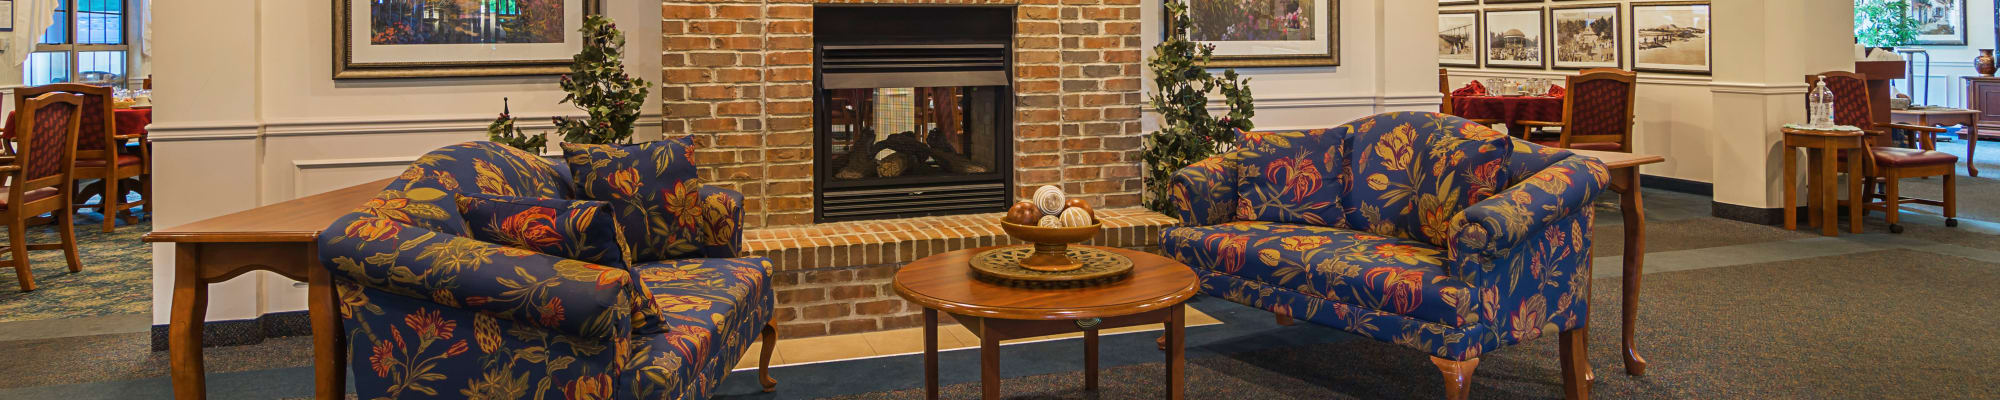 Directions to senior living community in Michigan City Indiana